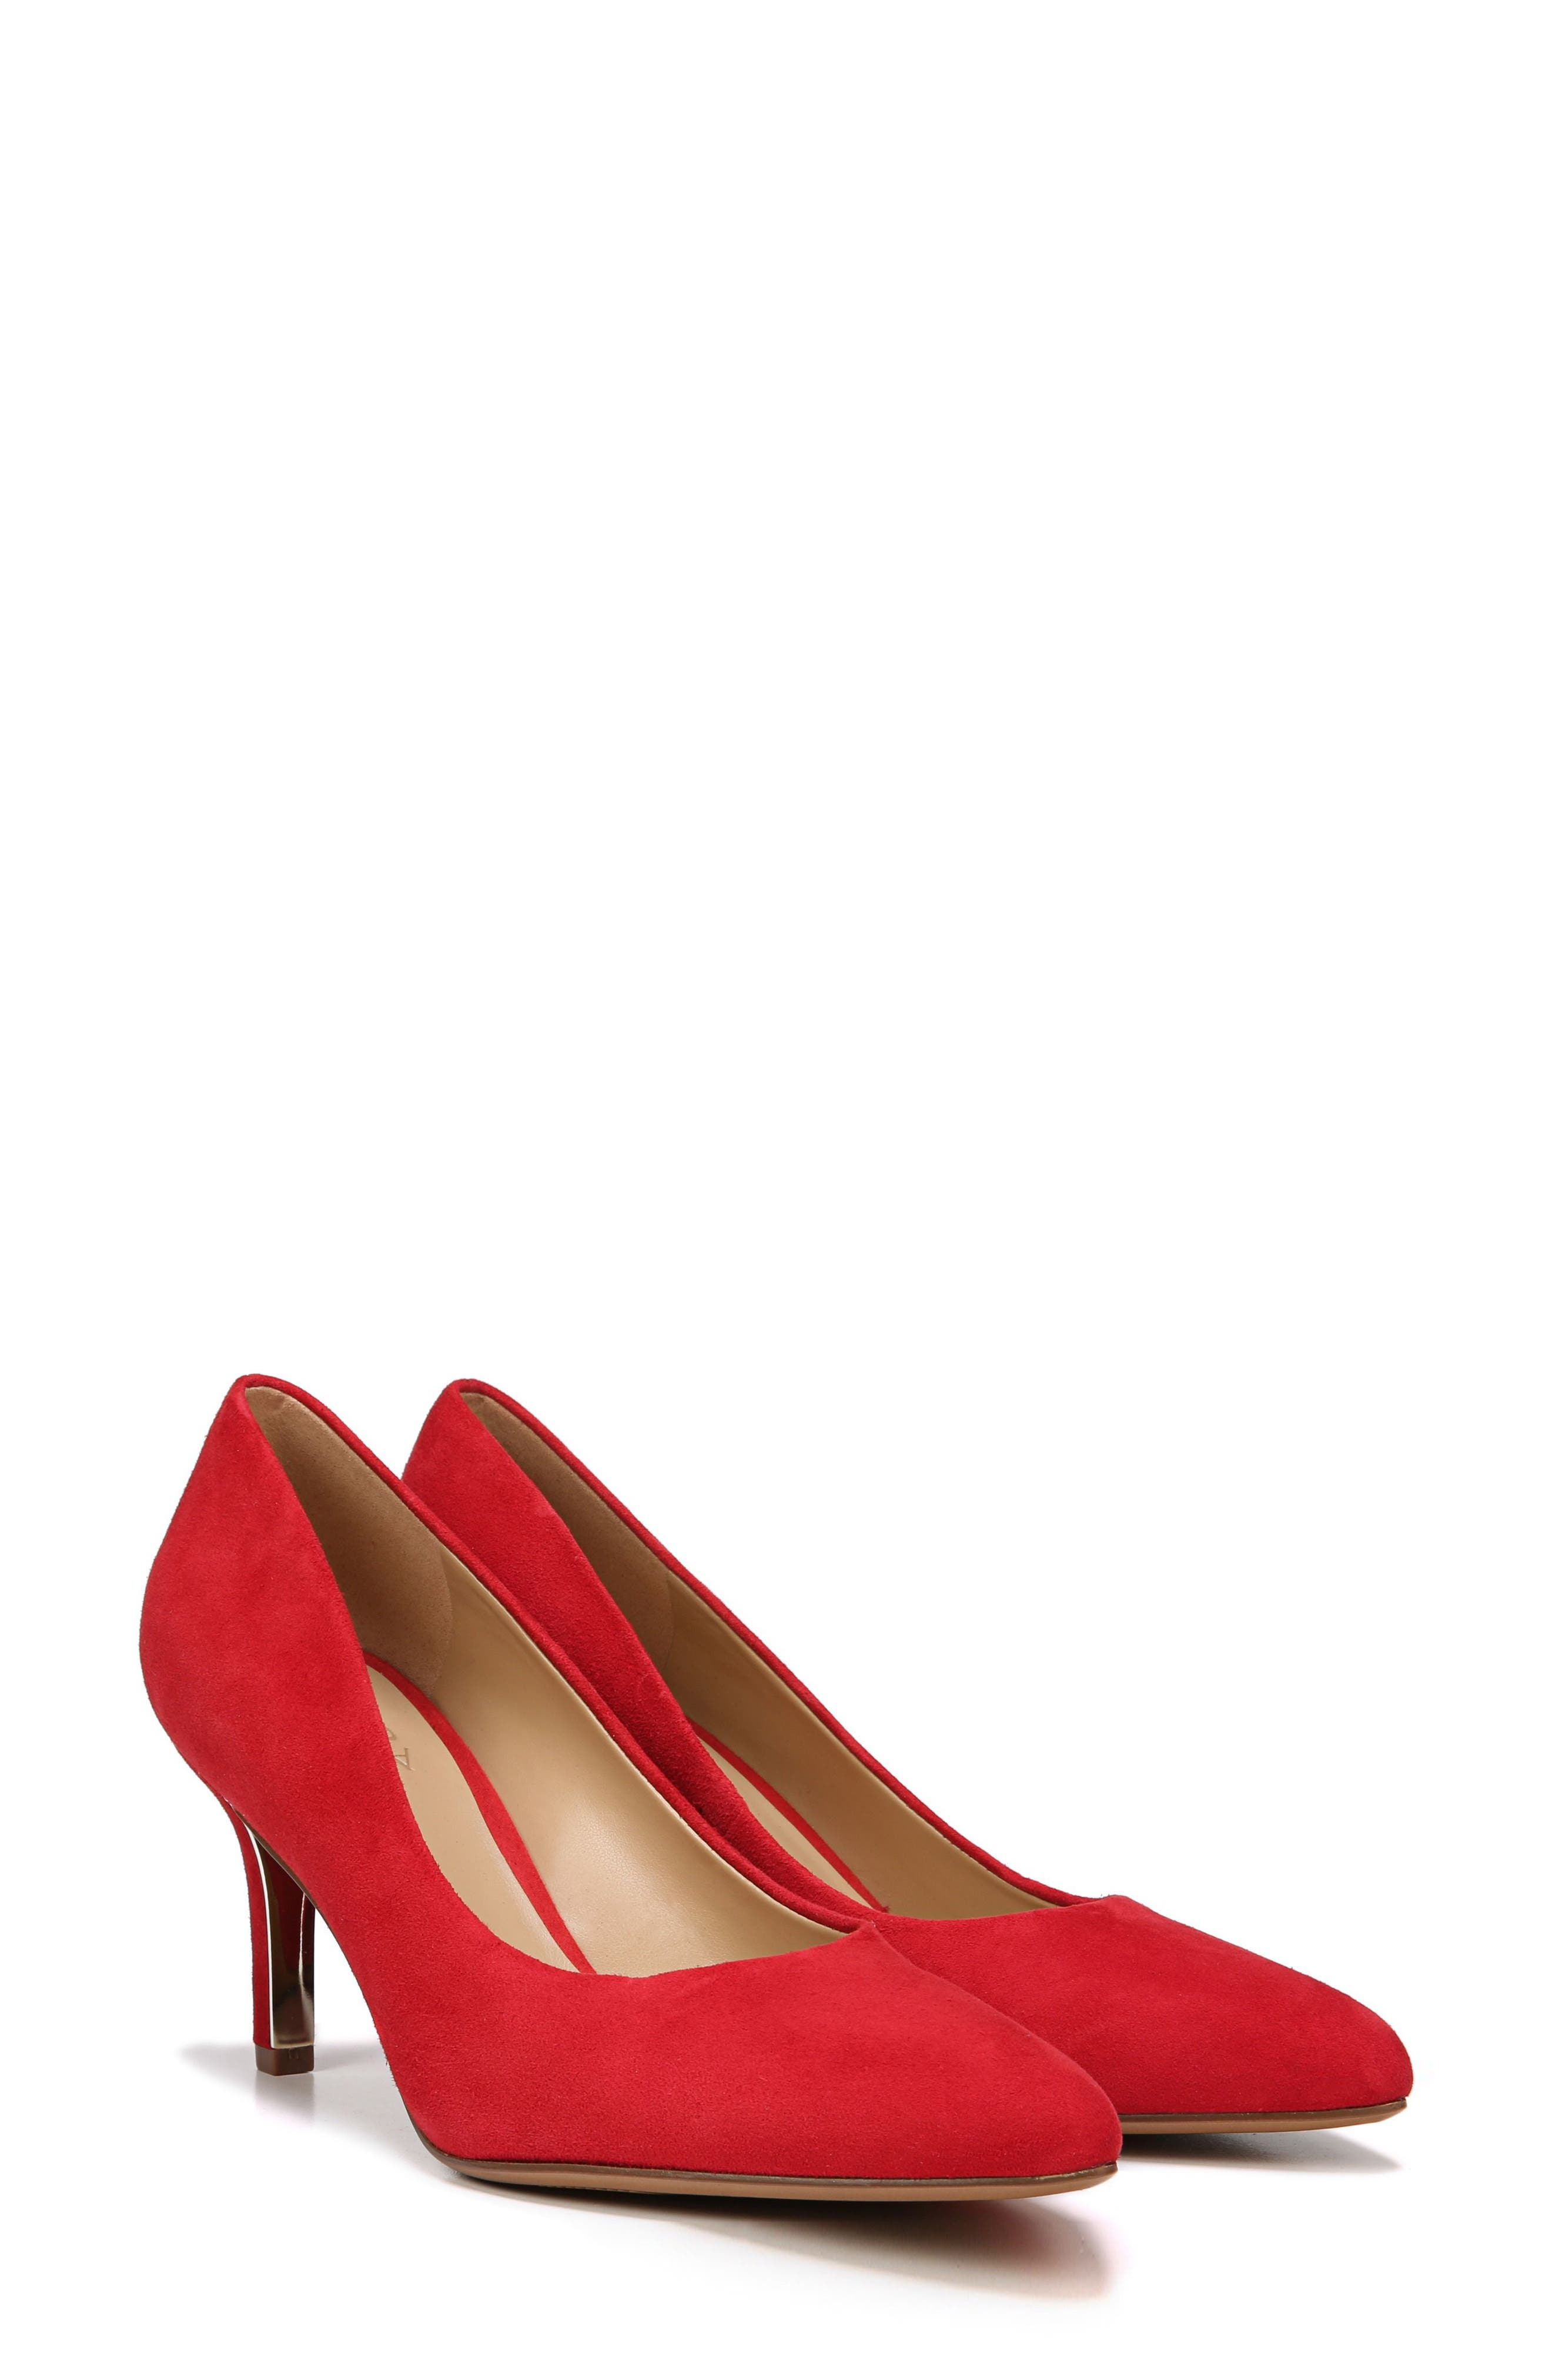 NATURALIZER, Natalie Pointy Toe Pump, Main thumbnail 1, color, RED SUEDE